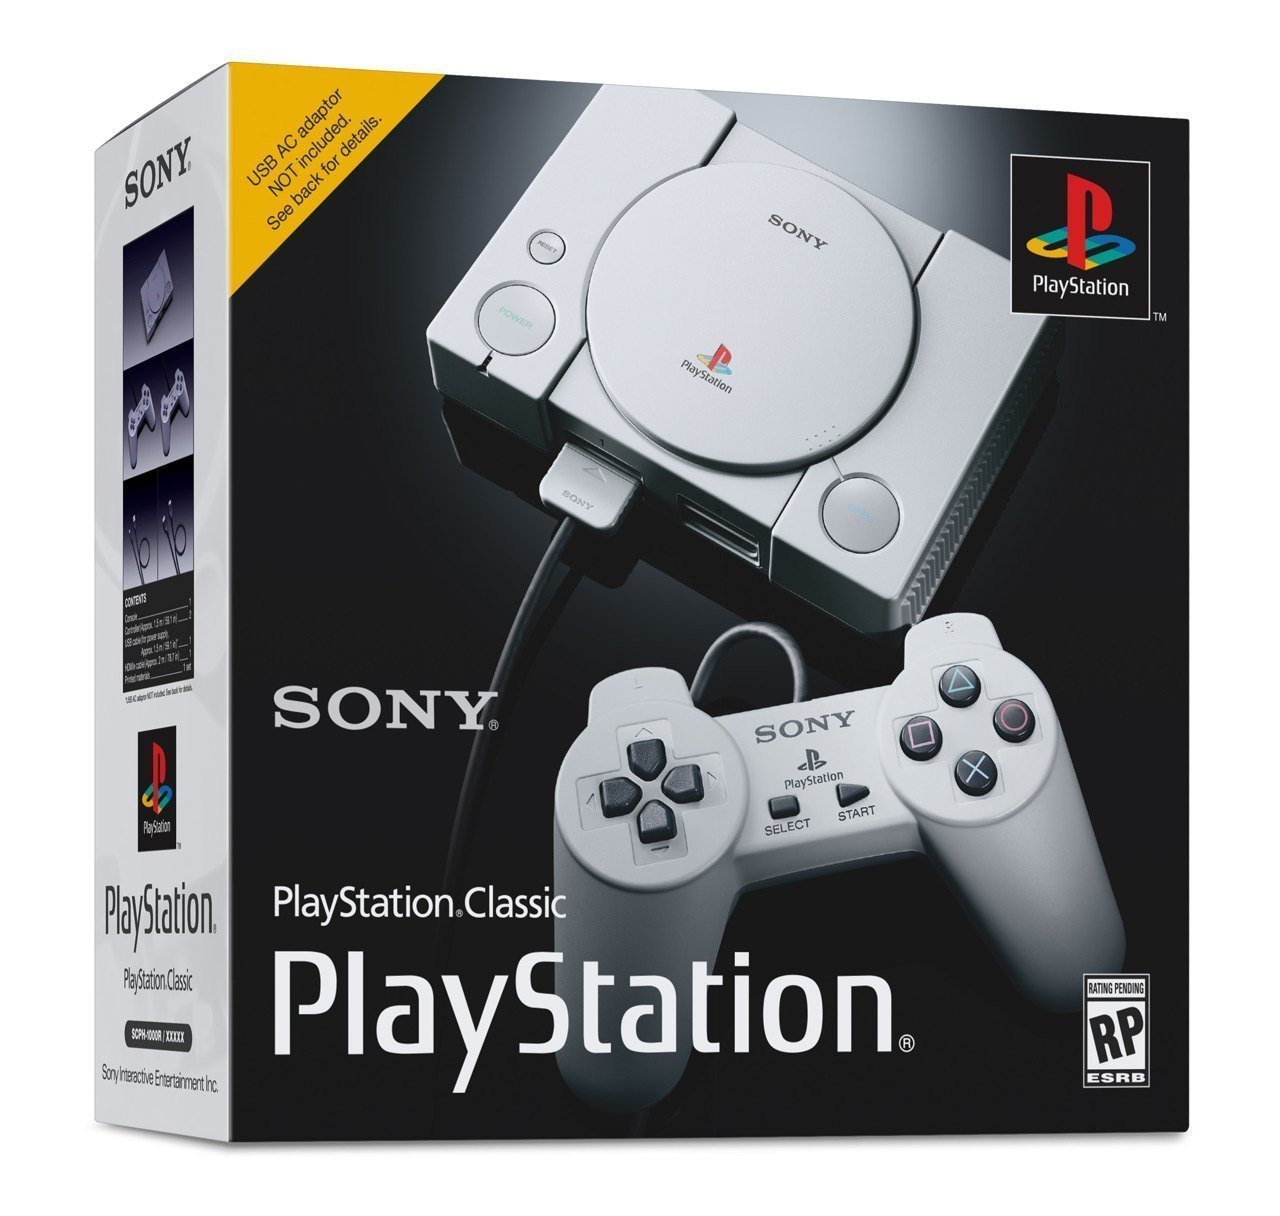 Sony Unveils The PlayStation Classic, A PS1 Mini Remake